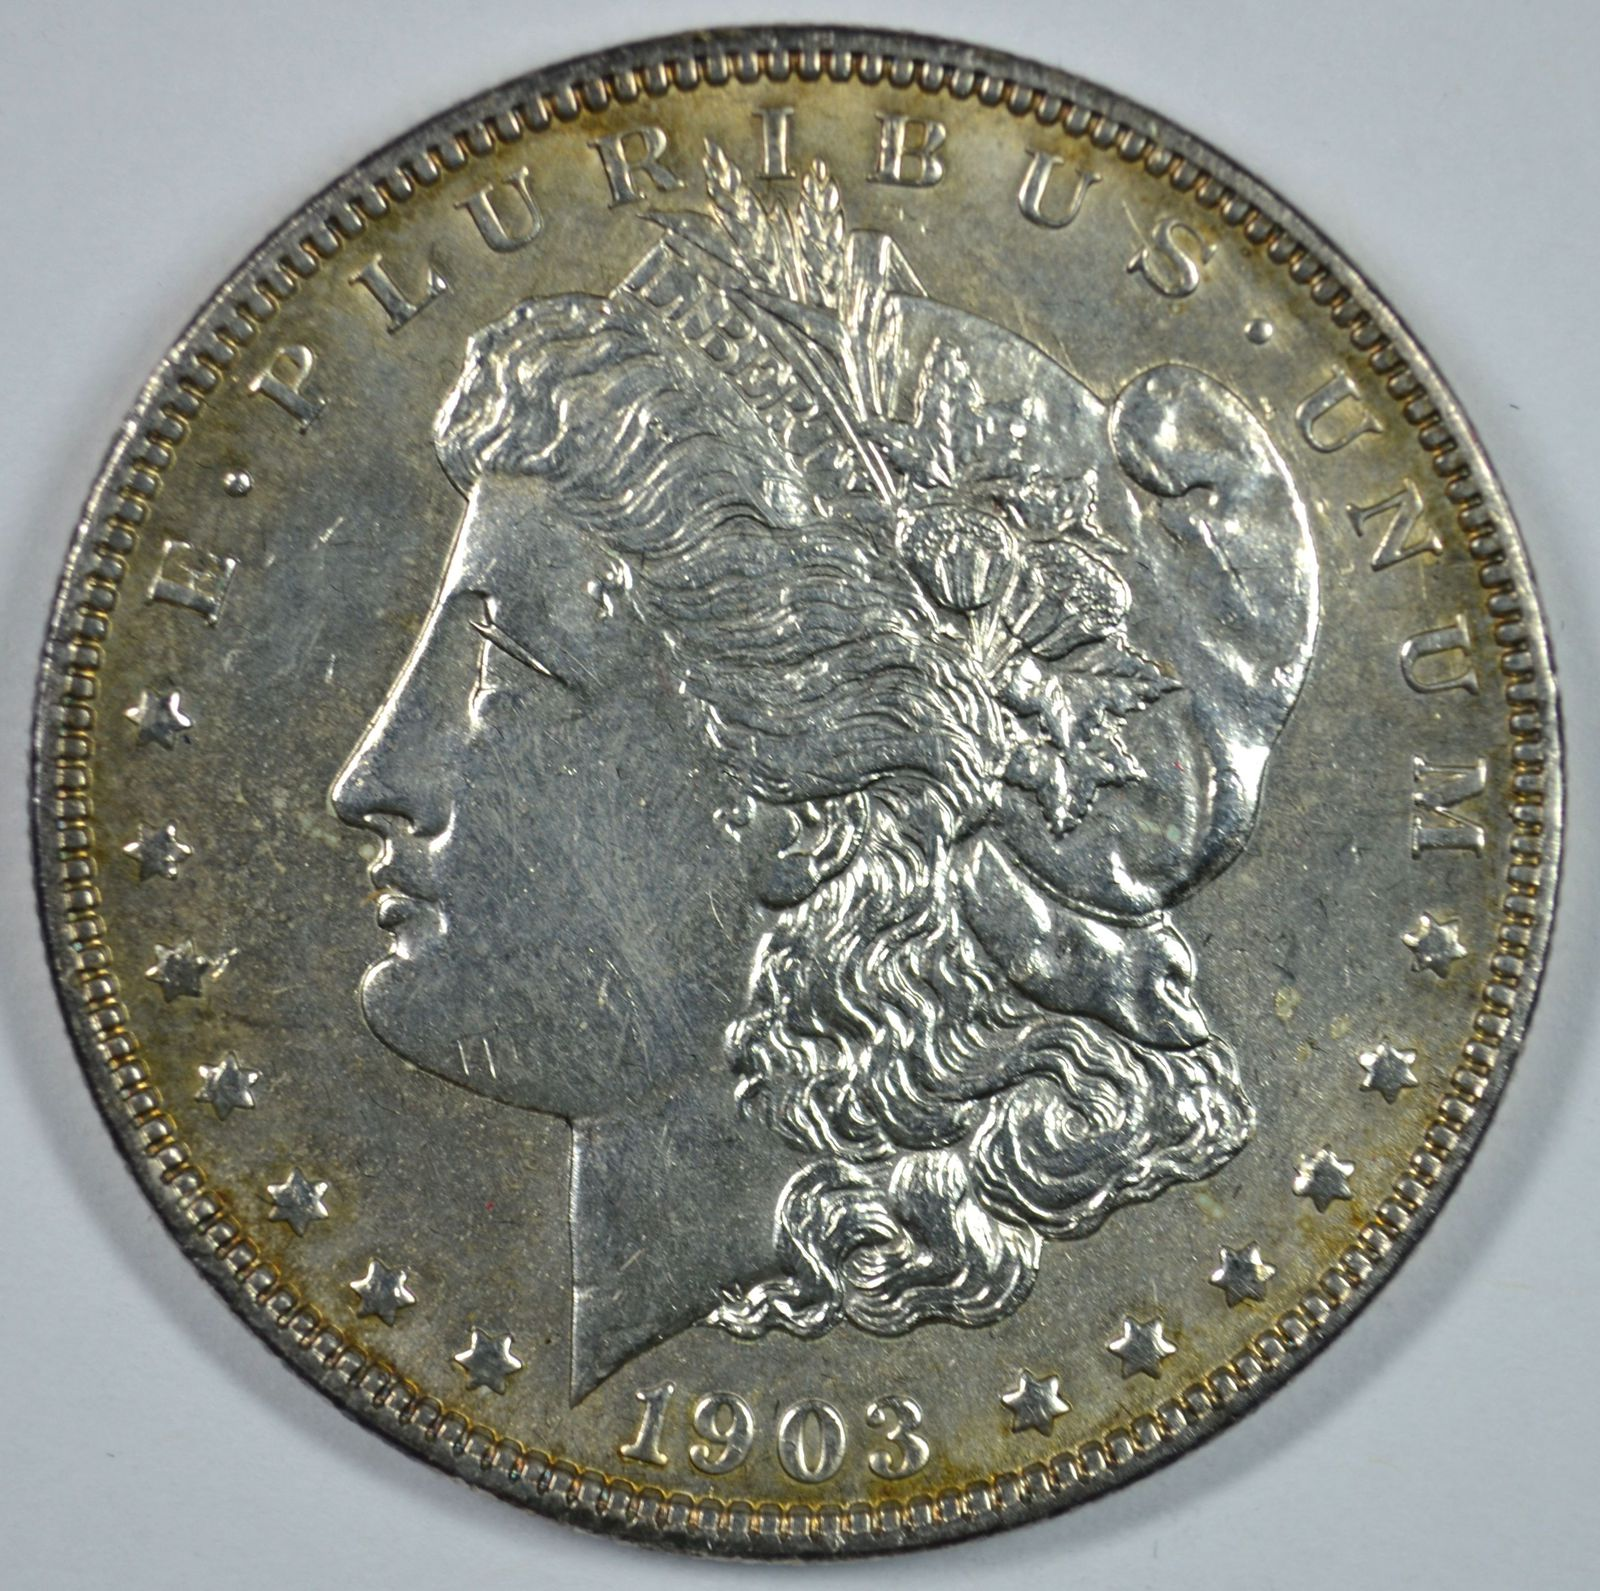 Primary image for 1903 P Morgan silver dollar AU details